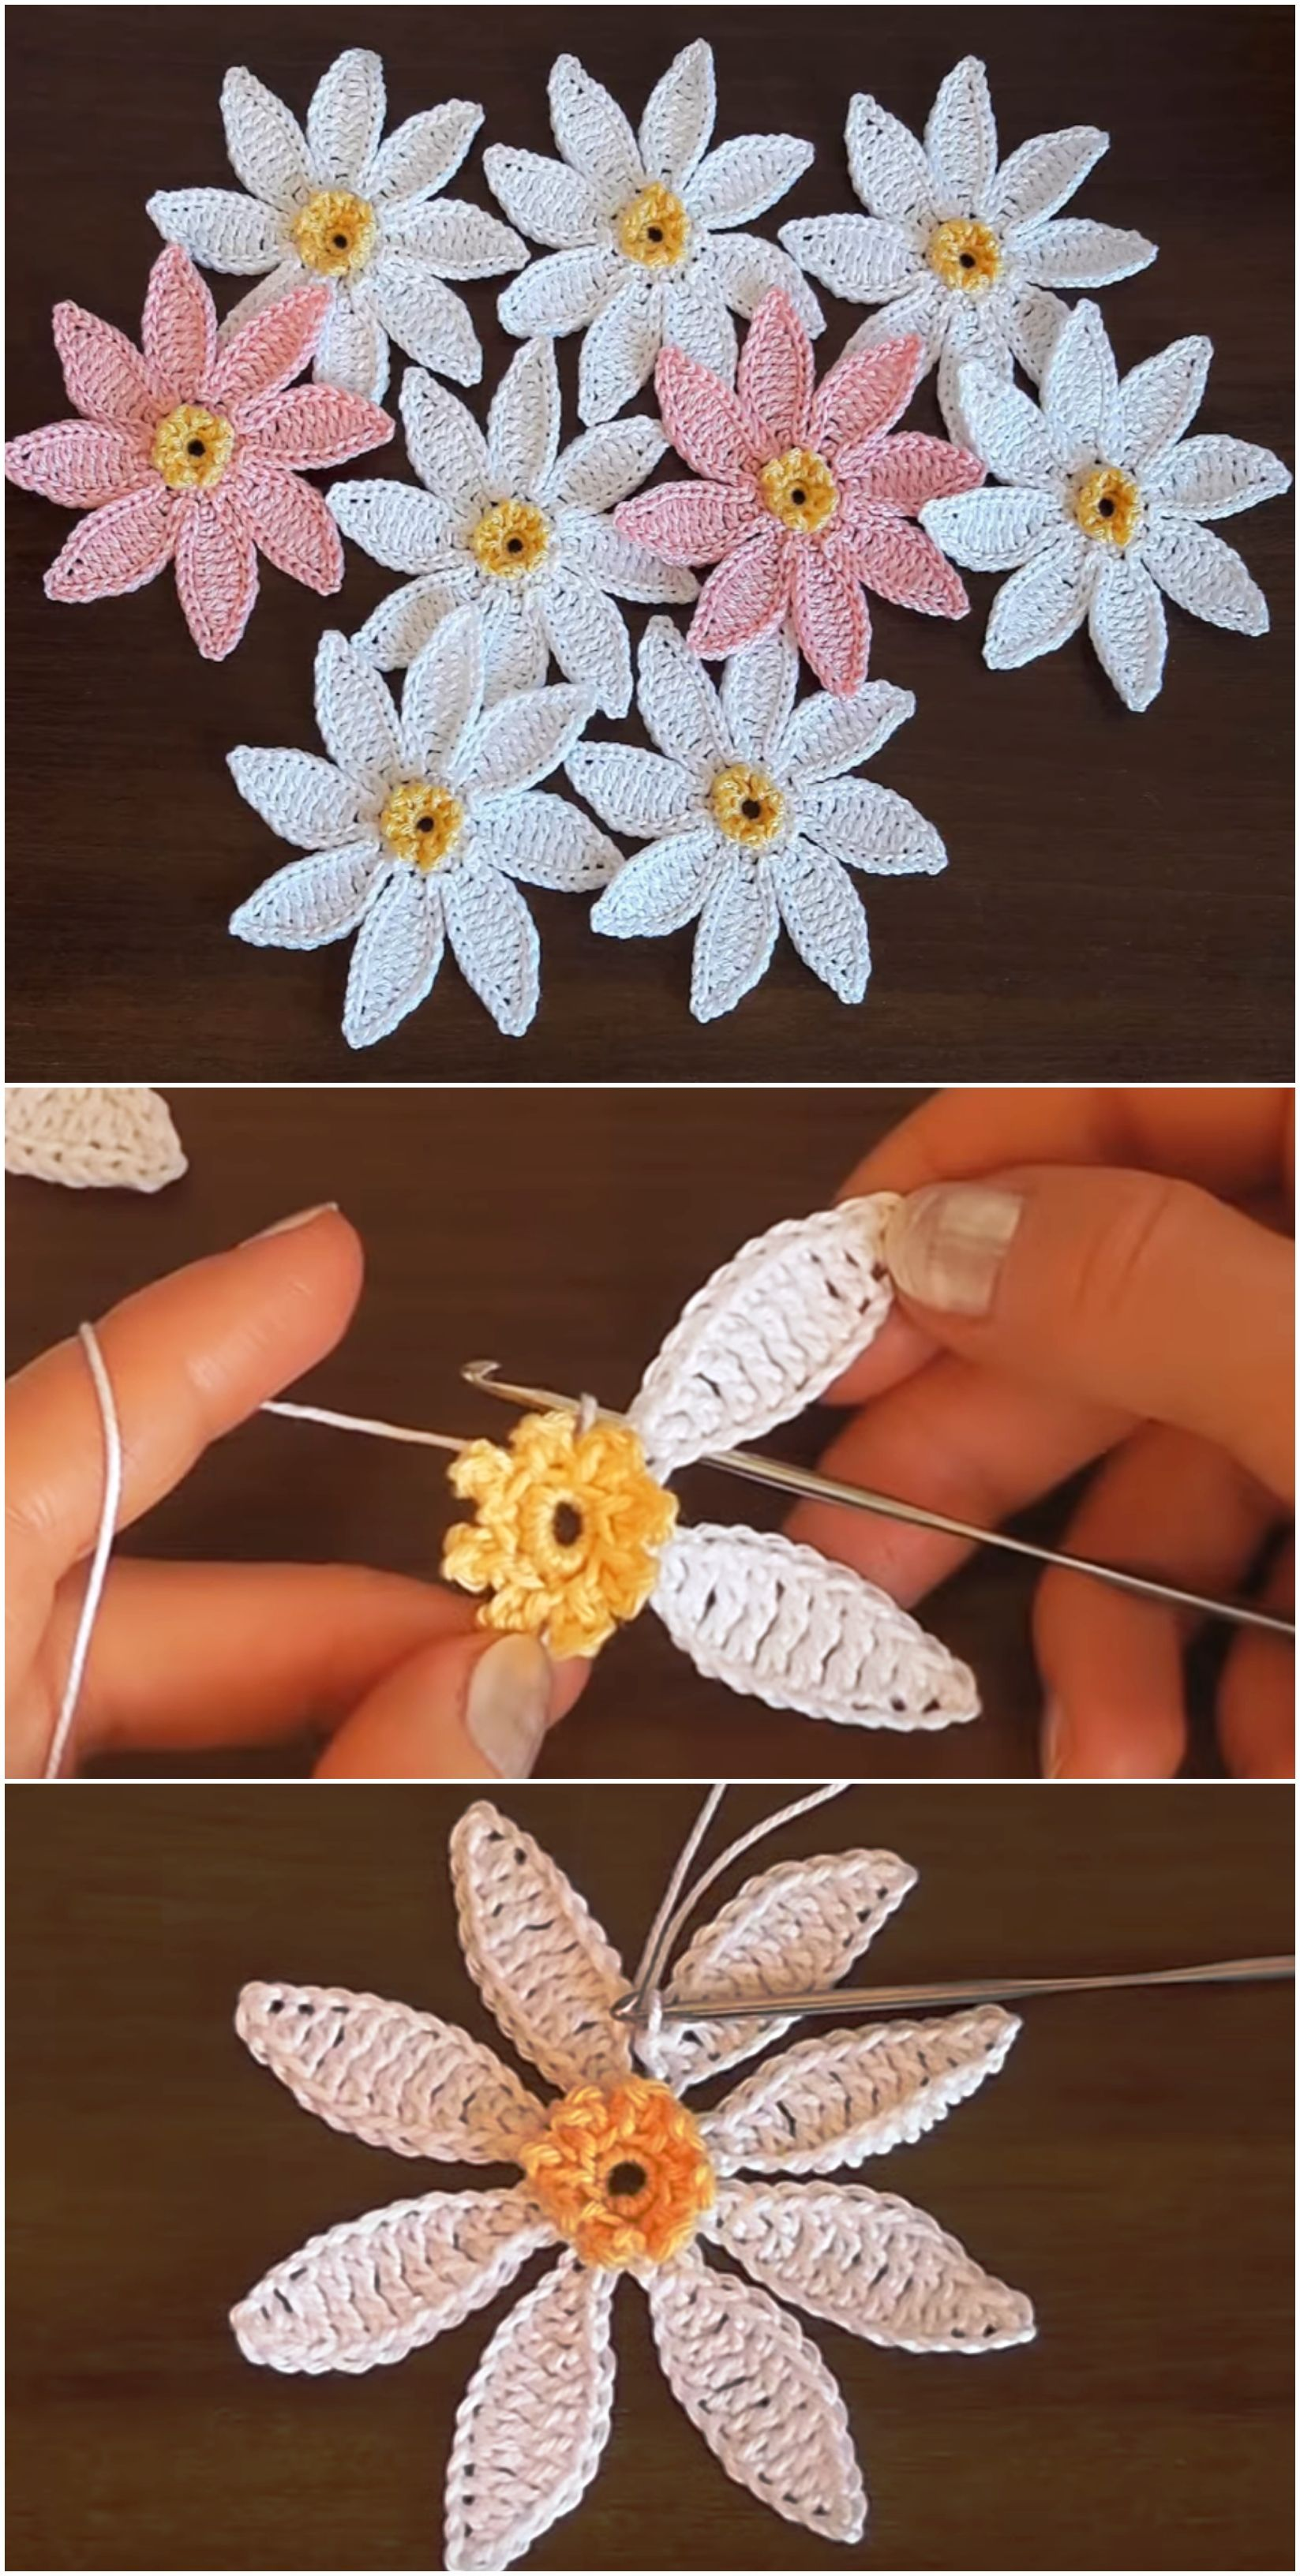 Crochet Very Easy Flower #crochetedflowers